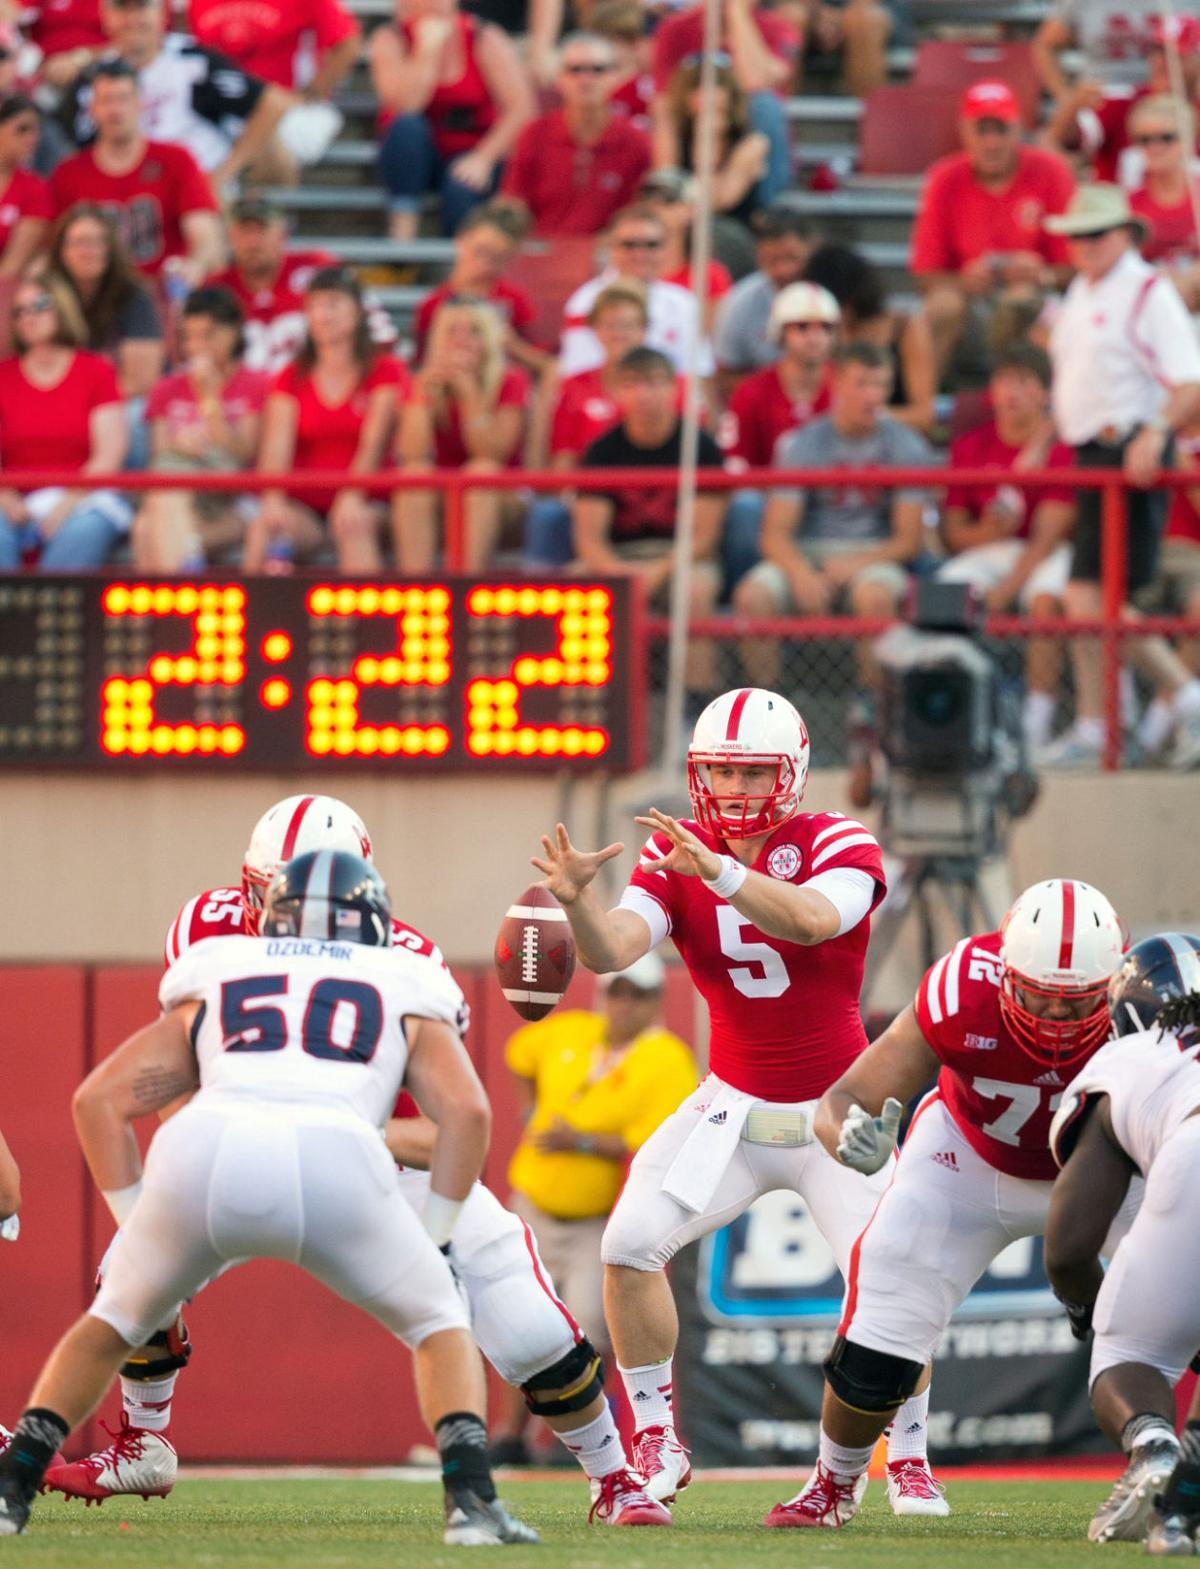 NEBRASKA FOOTBALL NOTES